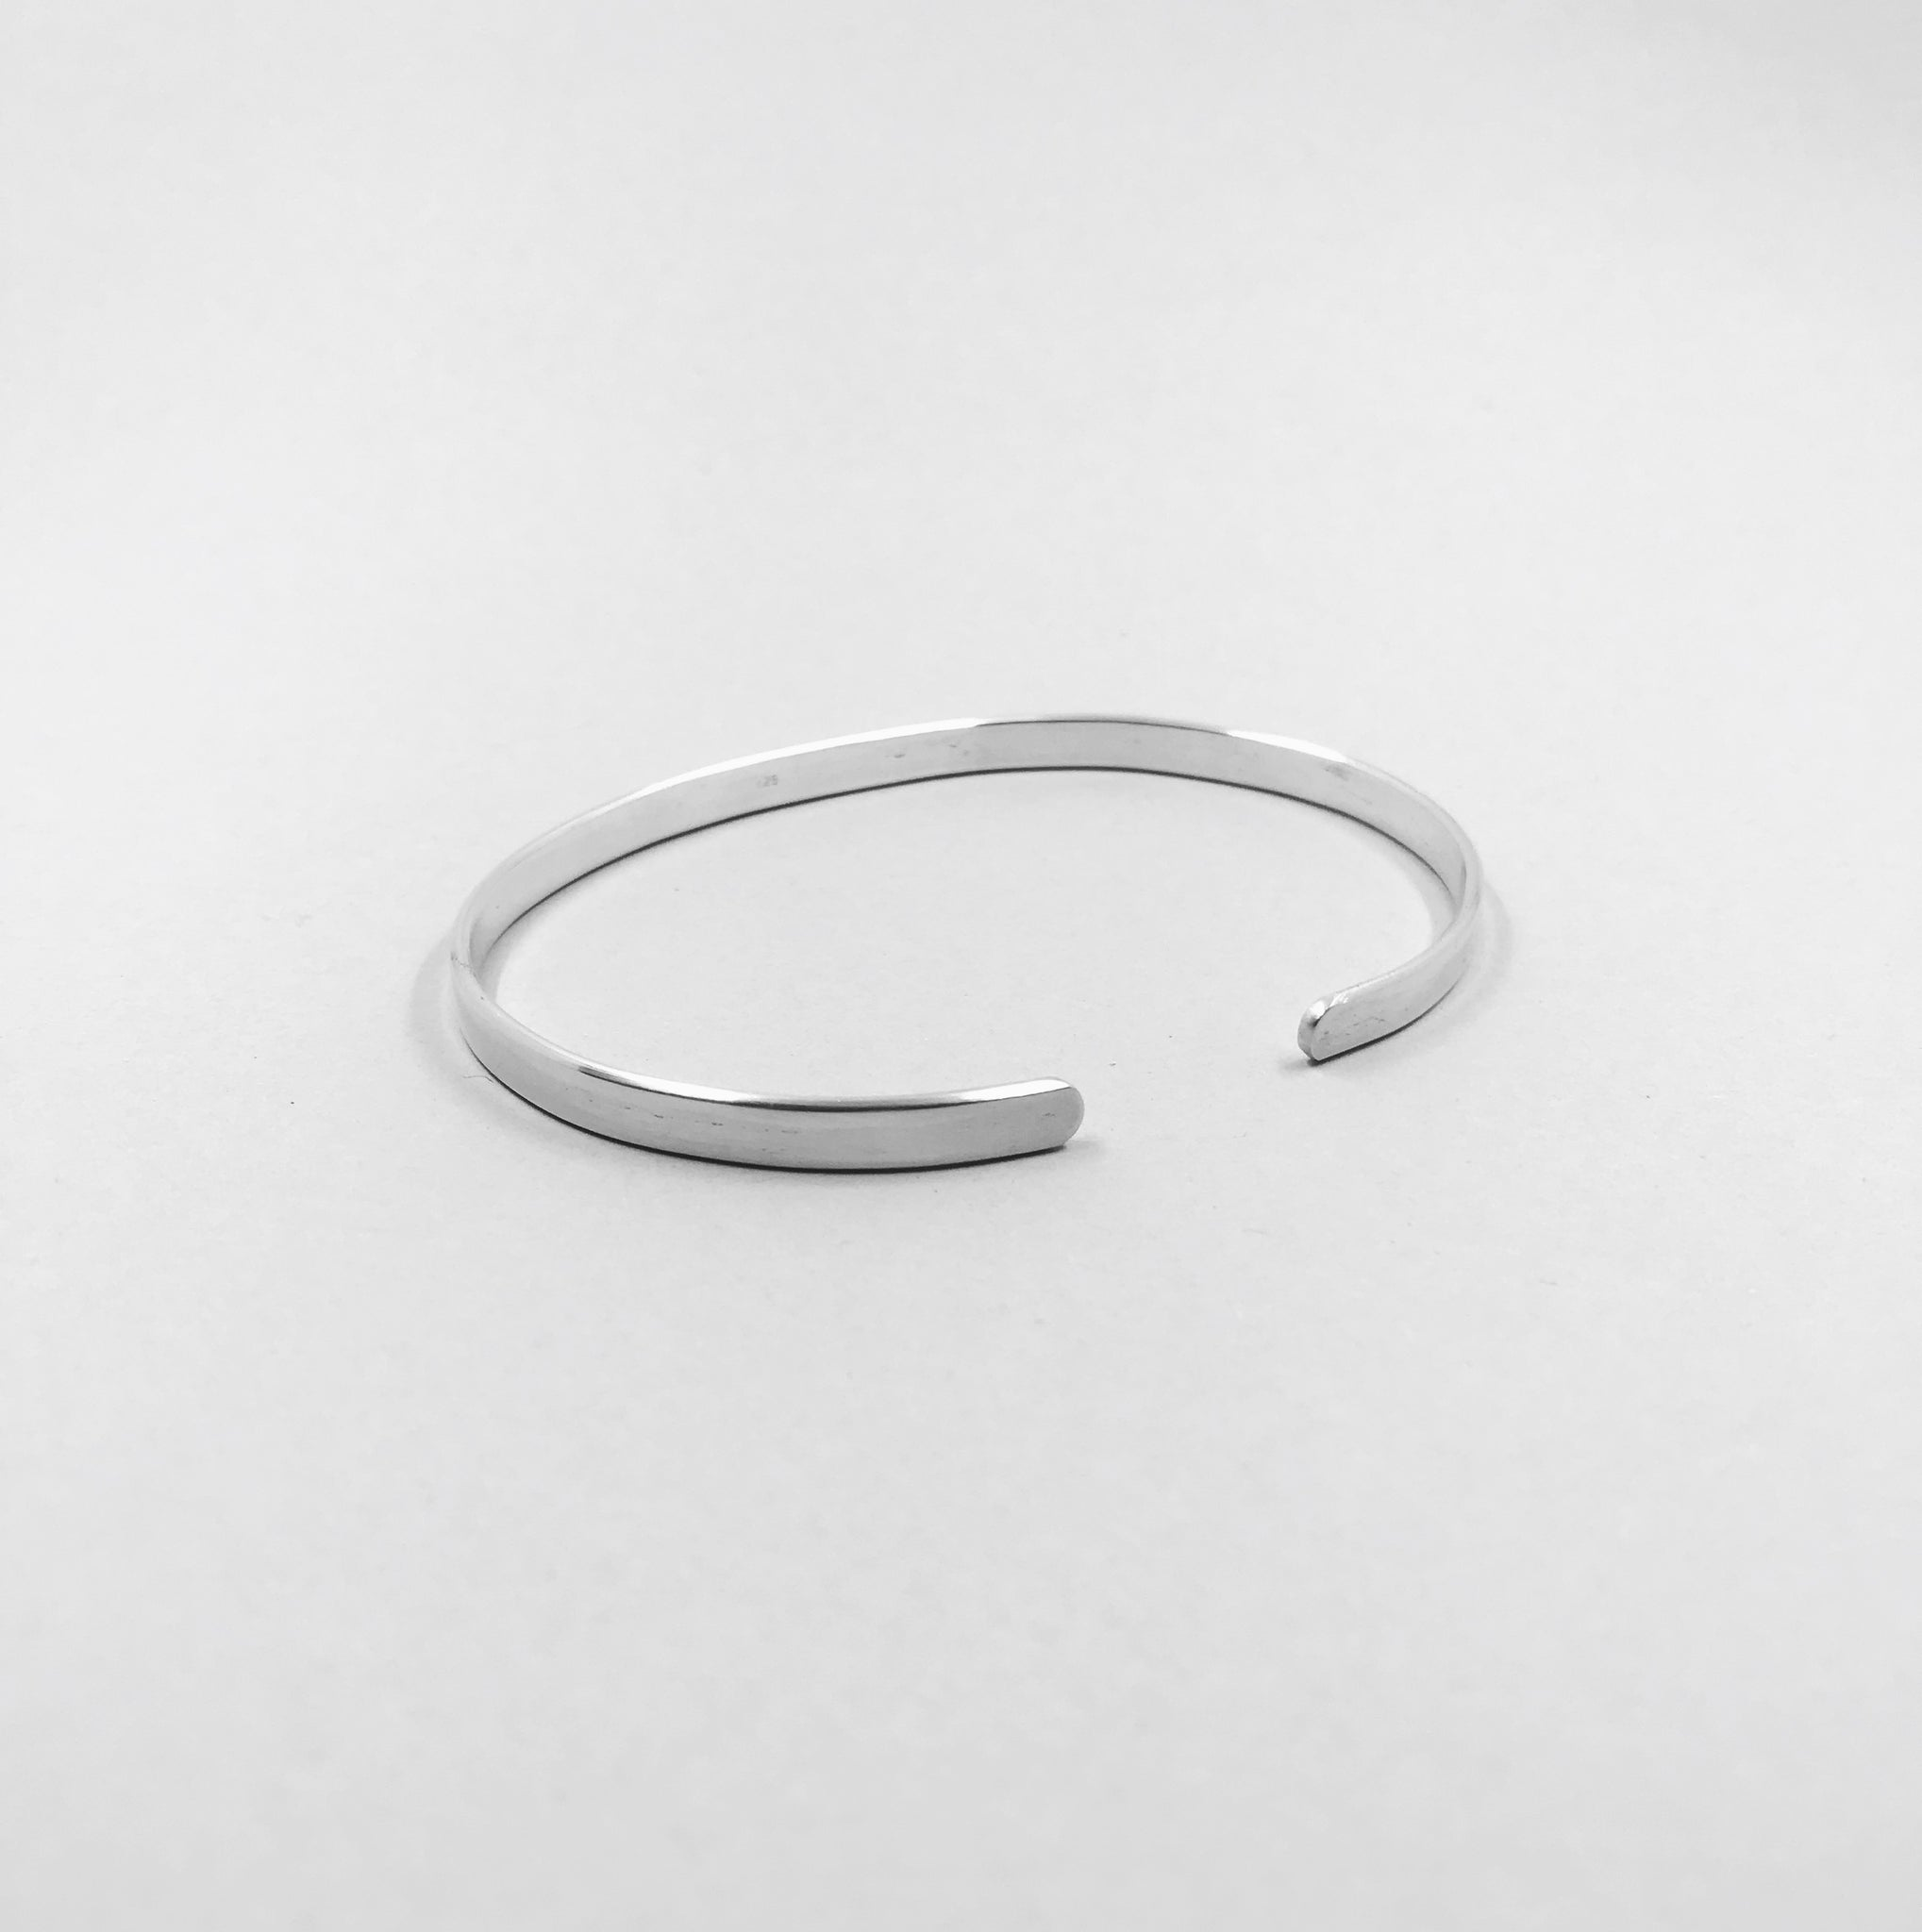 The Classic Bangle - 925 Sterling Silver